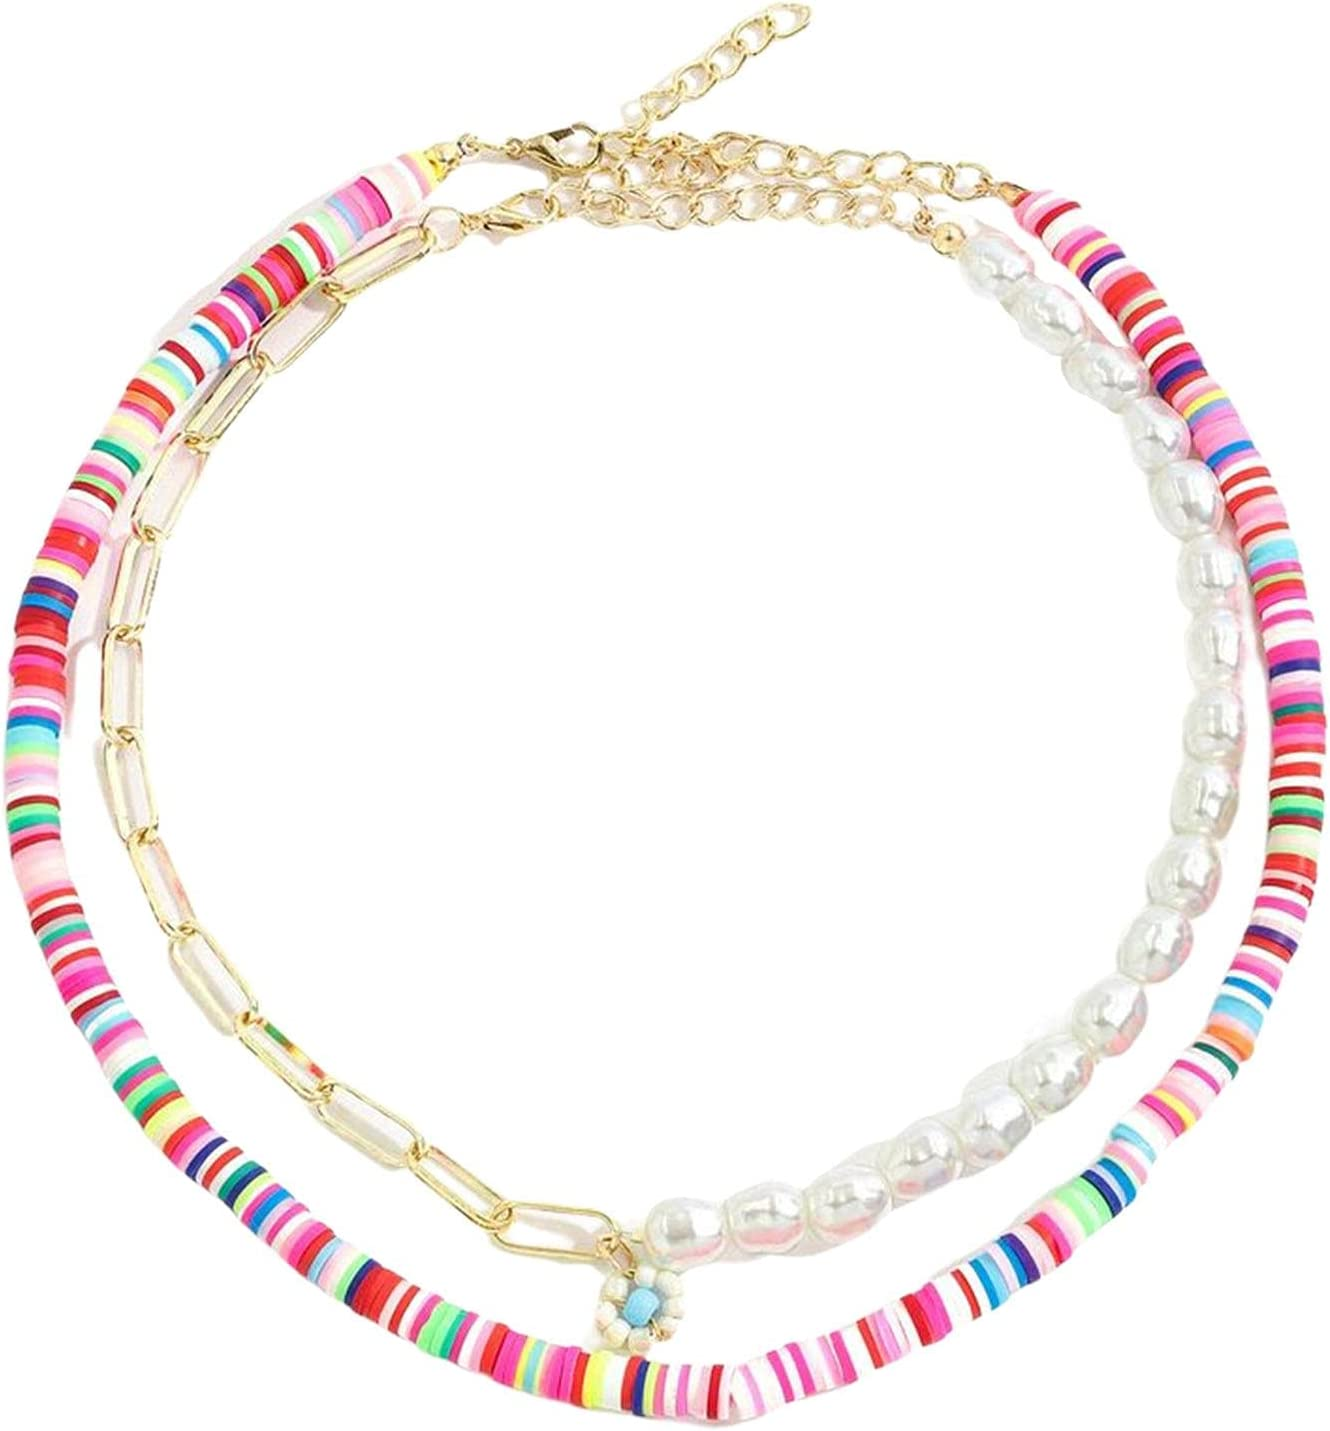 ERZU Boho Smile Layered Beaded Necklaces with Strand Bracelet, Smile Face Star Fruits Flowers Heart Shape Beads Pearl Stackable Collar Necklace Anklet for Women Girls Vsco Summer Beach Trip